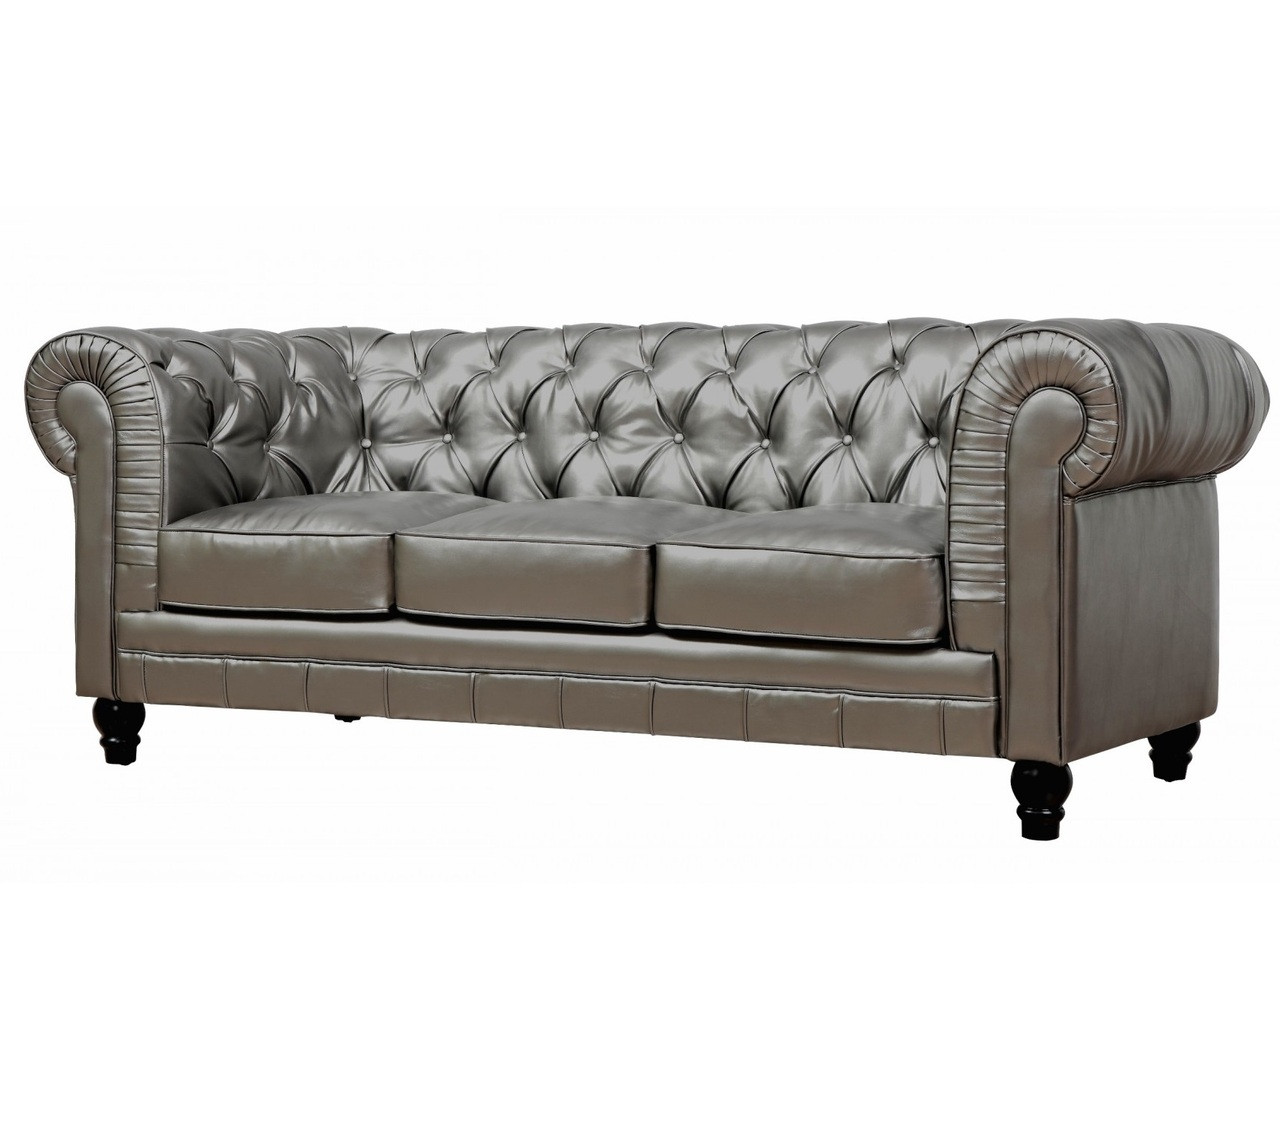 Genial Zahara Silver Leather Tufted Chesterfield Sofa